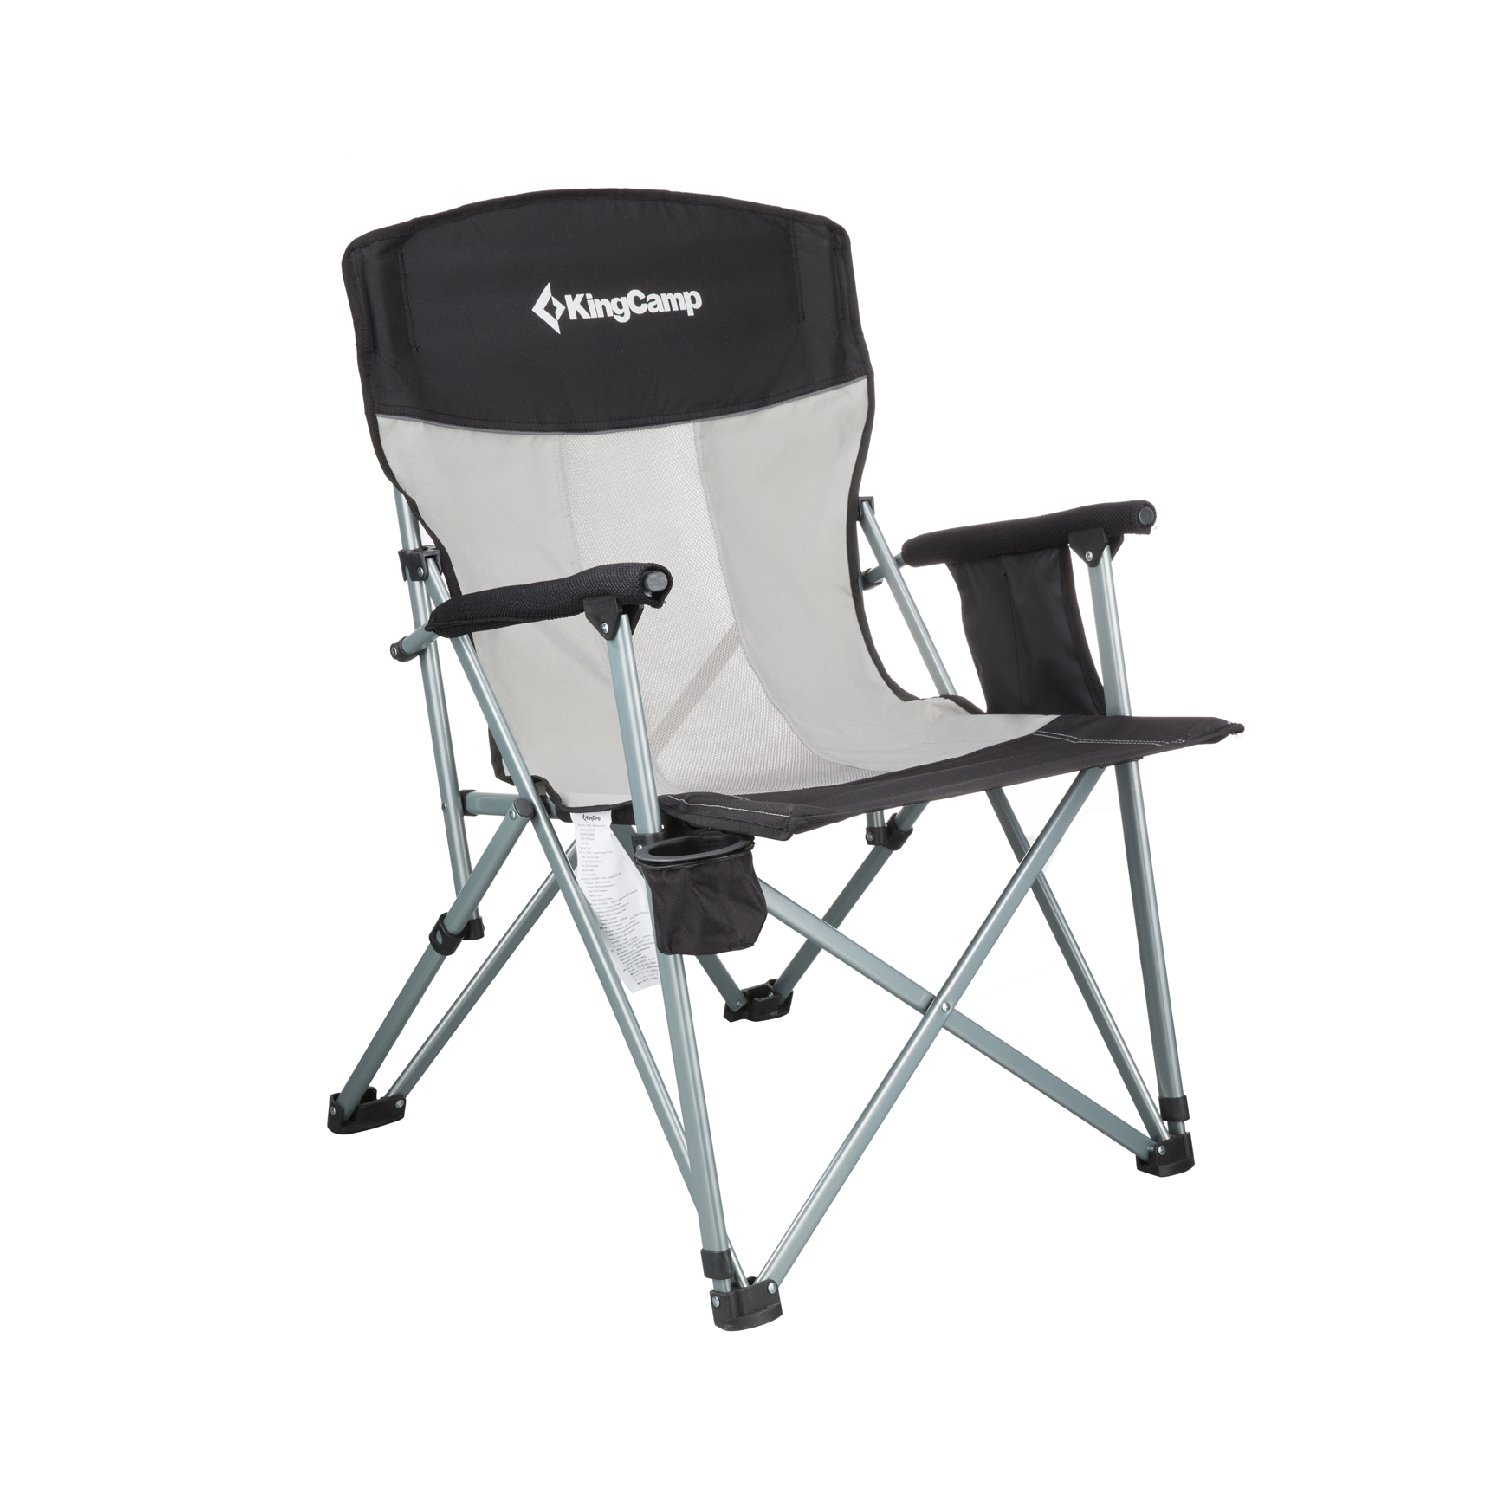 KingCamp Camping Chair Mesh High Back Ergonomic with Cup Holder Armrest Pocket Headrest Breathable Folding Portable Oversized Heavy Duty, Supports 330 lbs